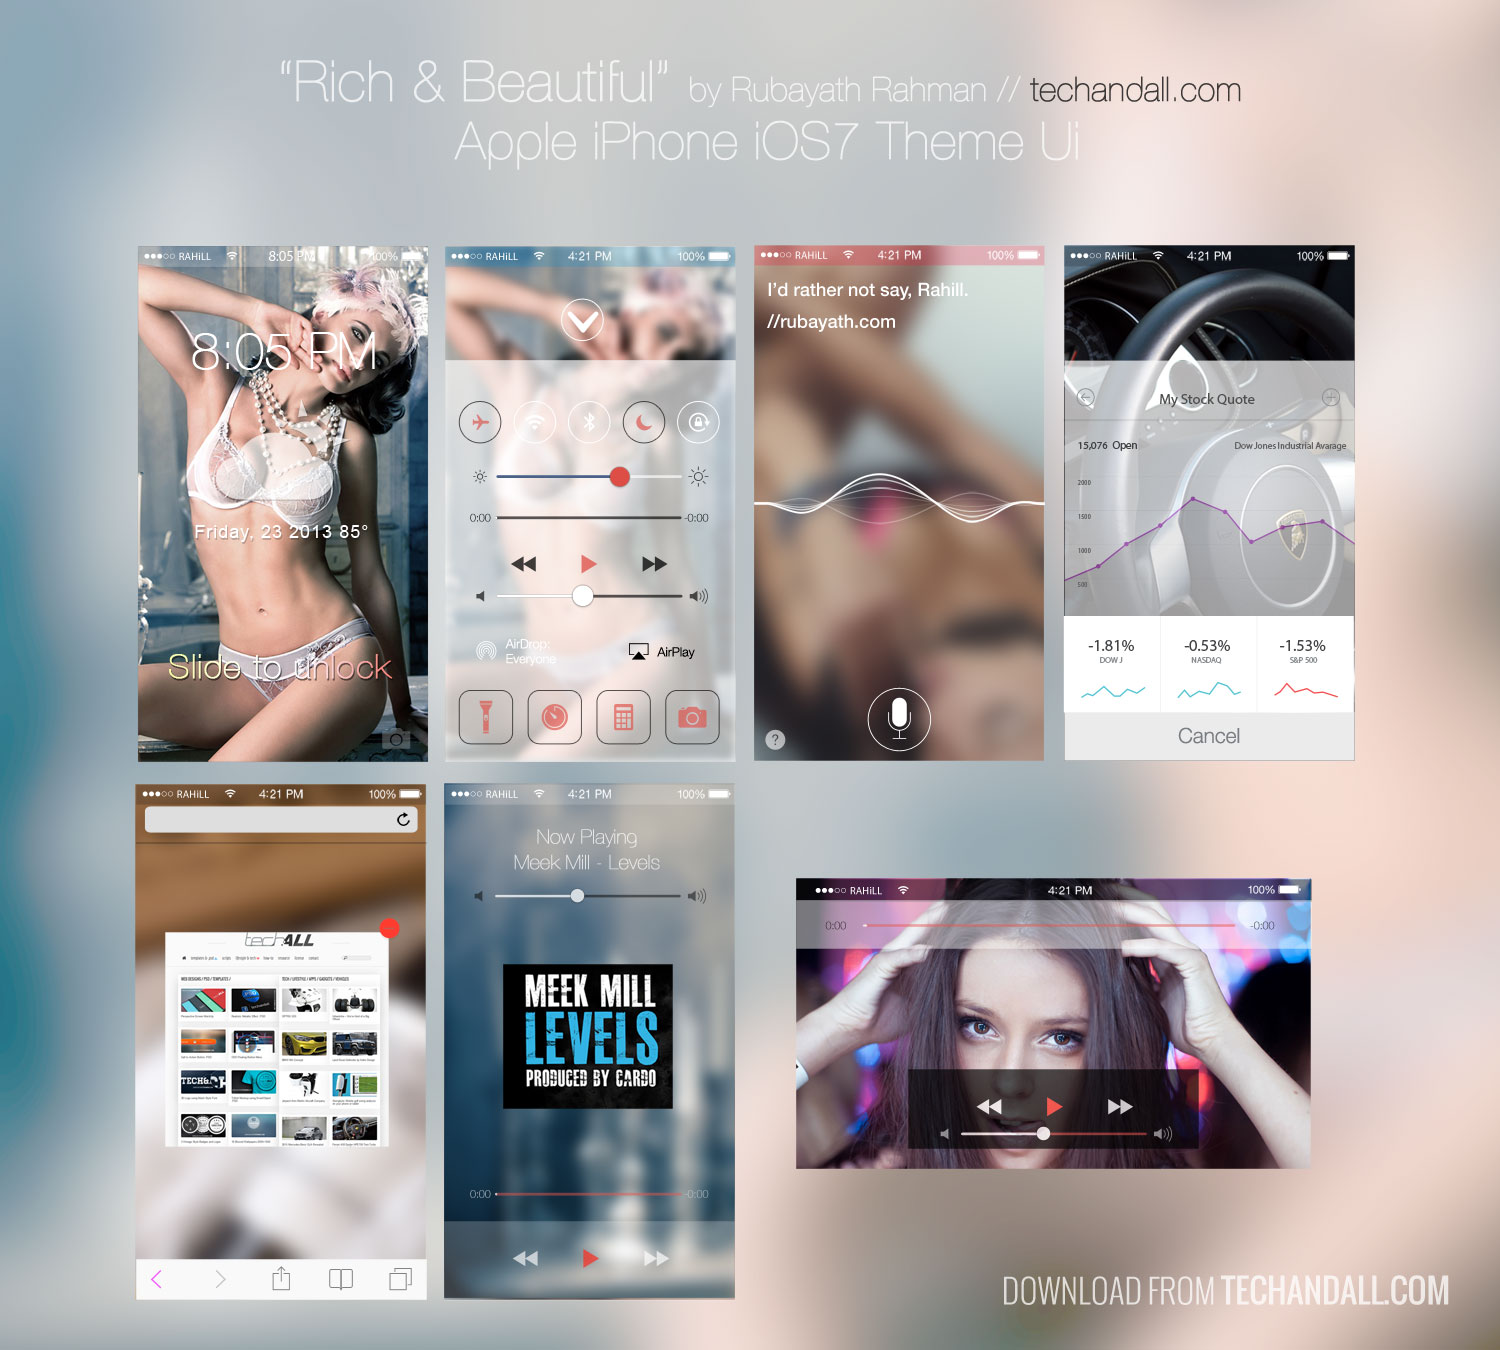 http://www.techandall.com/wp-content/uploads/2013/08/TechAndAll_iOS-7_UI_Components_preview_large.jpg